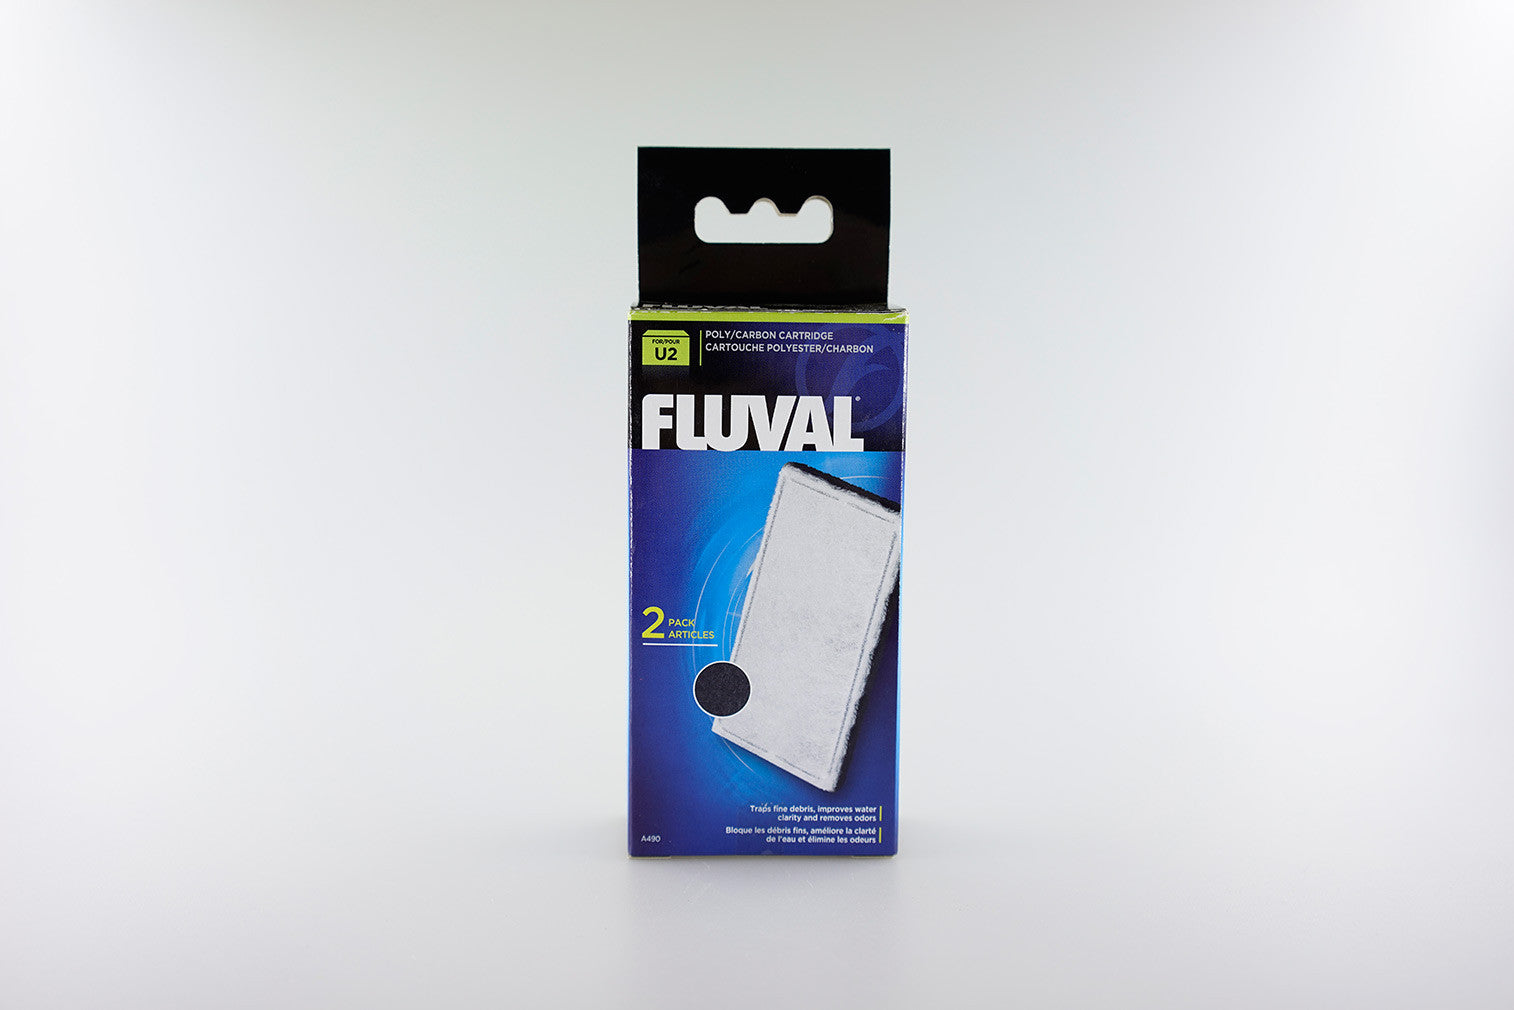 FLUVAL - U-Series Filter Media - Poly/Carbon Catridge